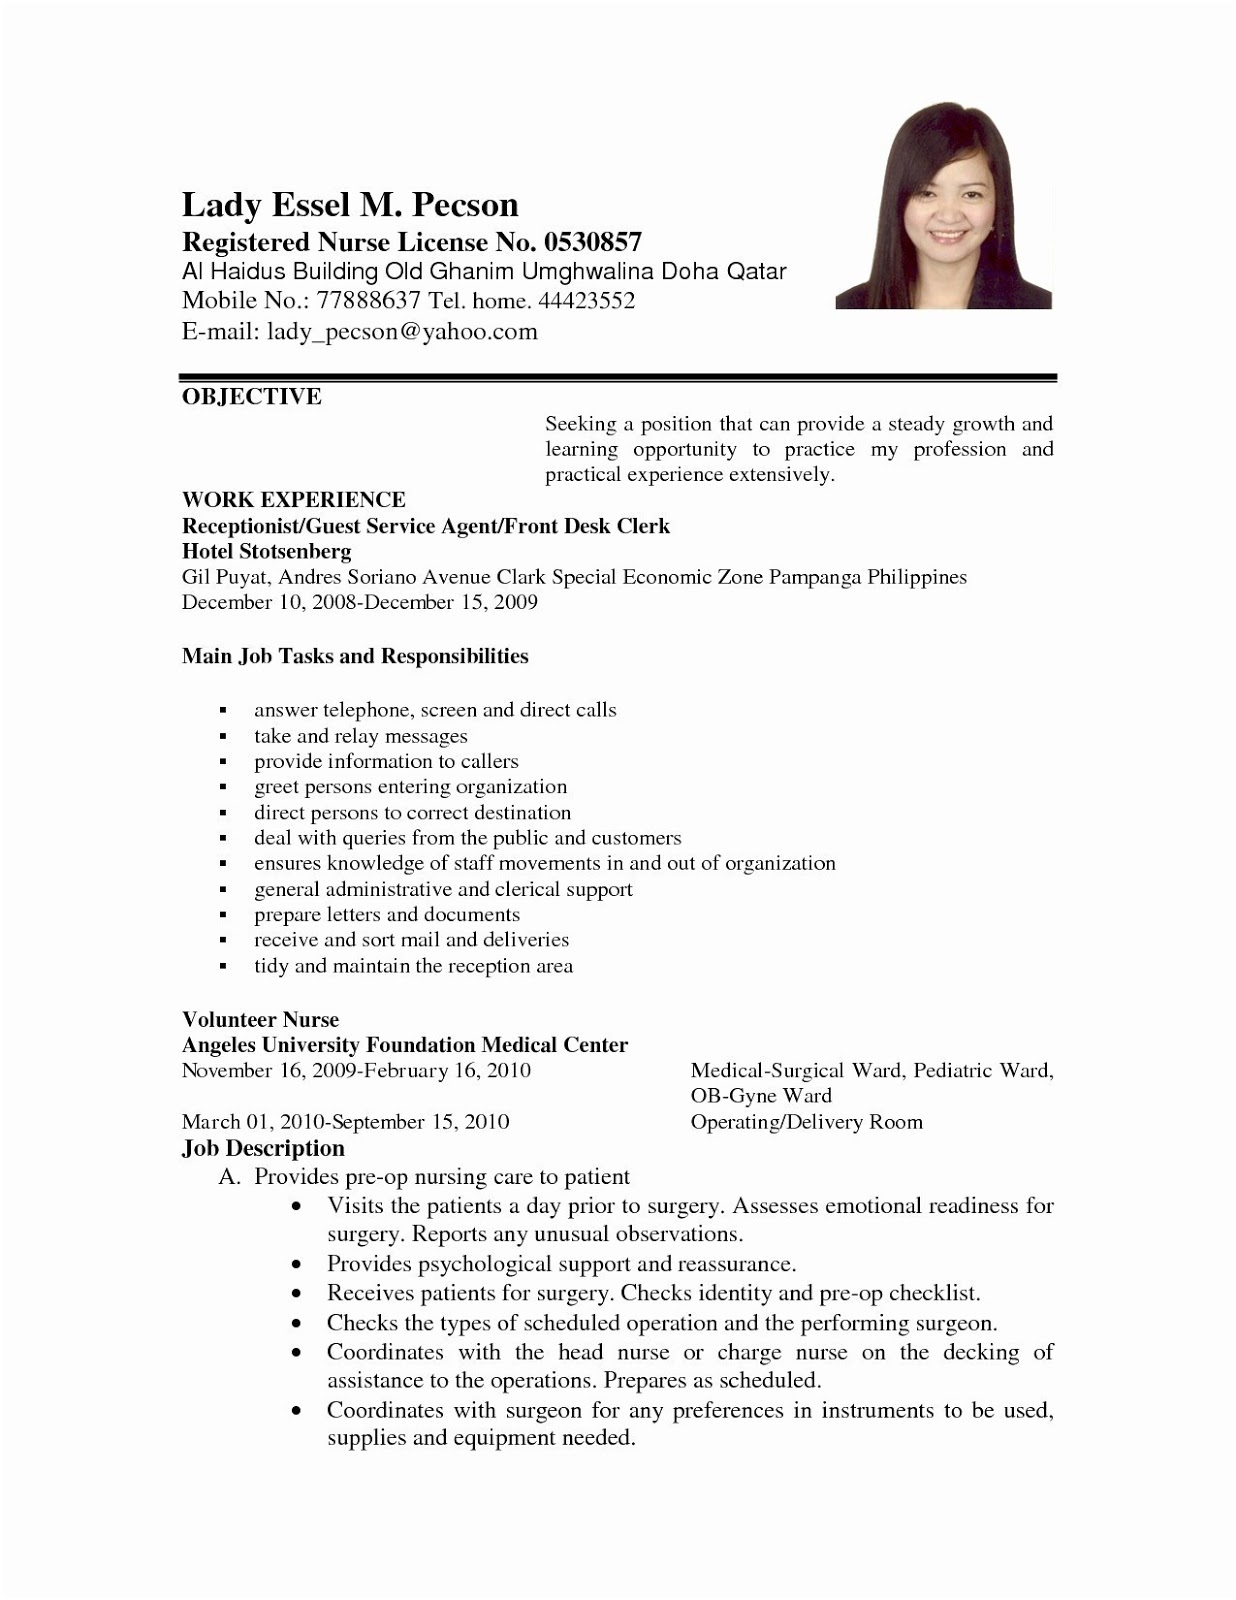 job resume layout job resume outlines 2019 job resume forms job resume structure first job resume layout 2020 resume job apply format job resume templates australia resume job application format